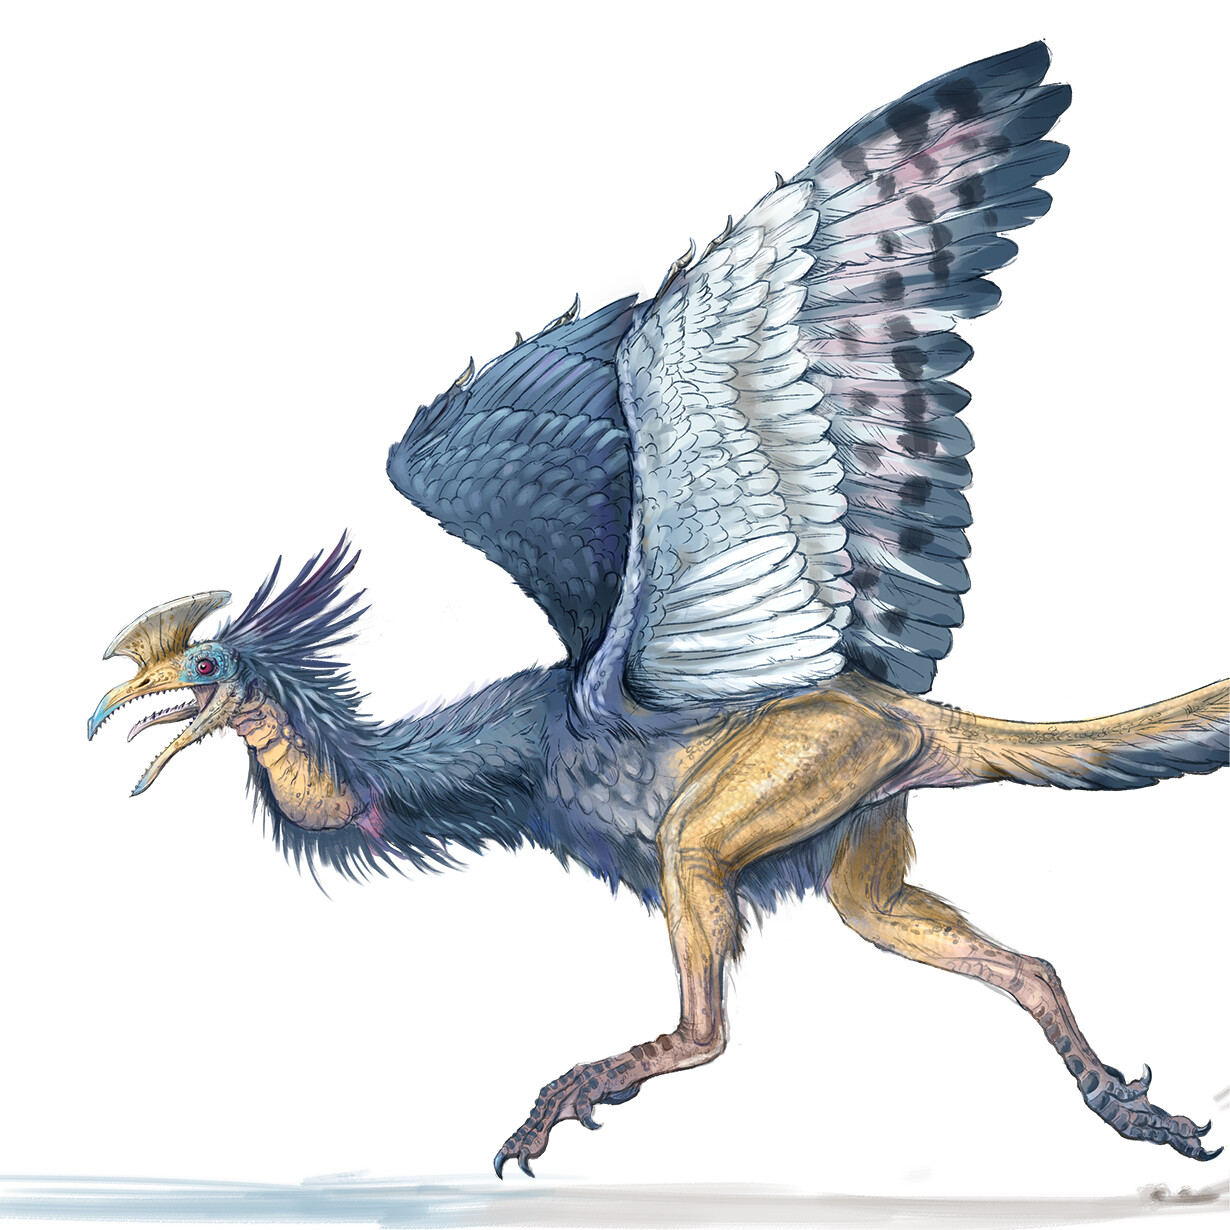 Hackbill (bird and dinosaur hybrid)